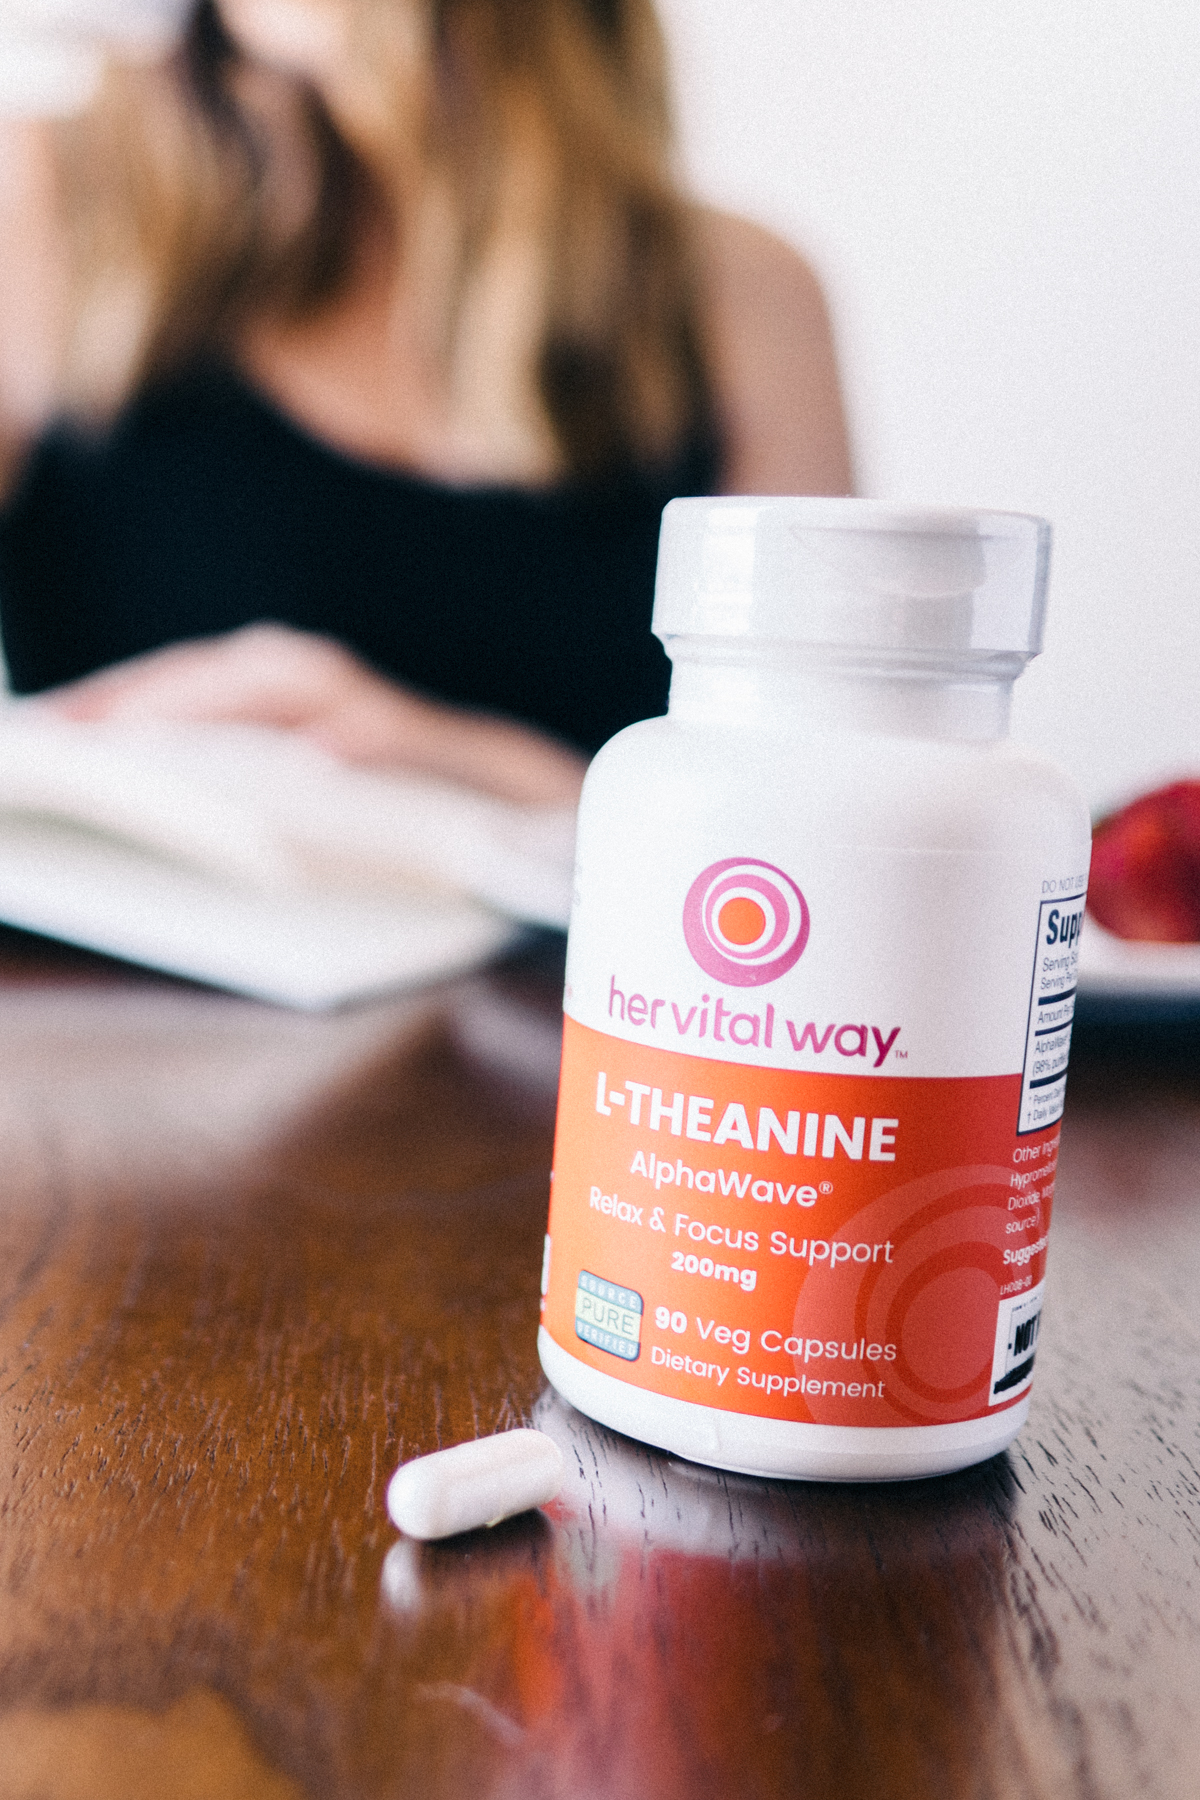 Let's talk about... My Journey with L-Theanine from Her Vital Way   Wolf & Stag